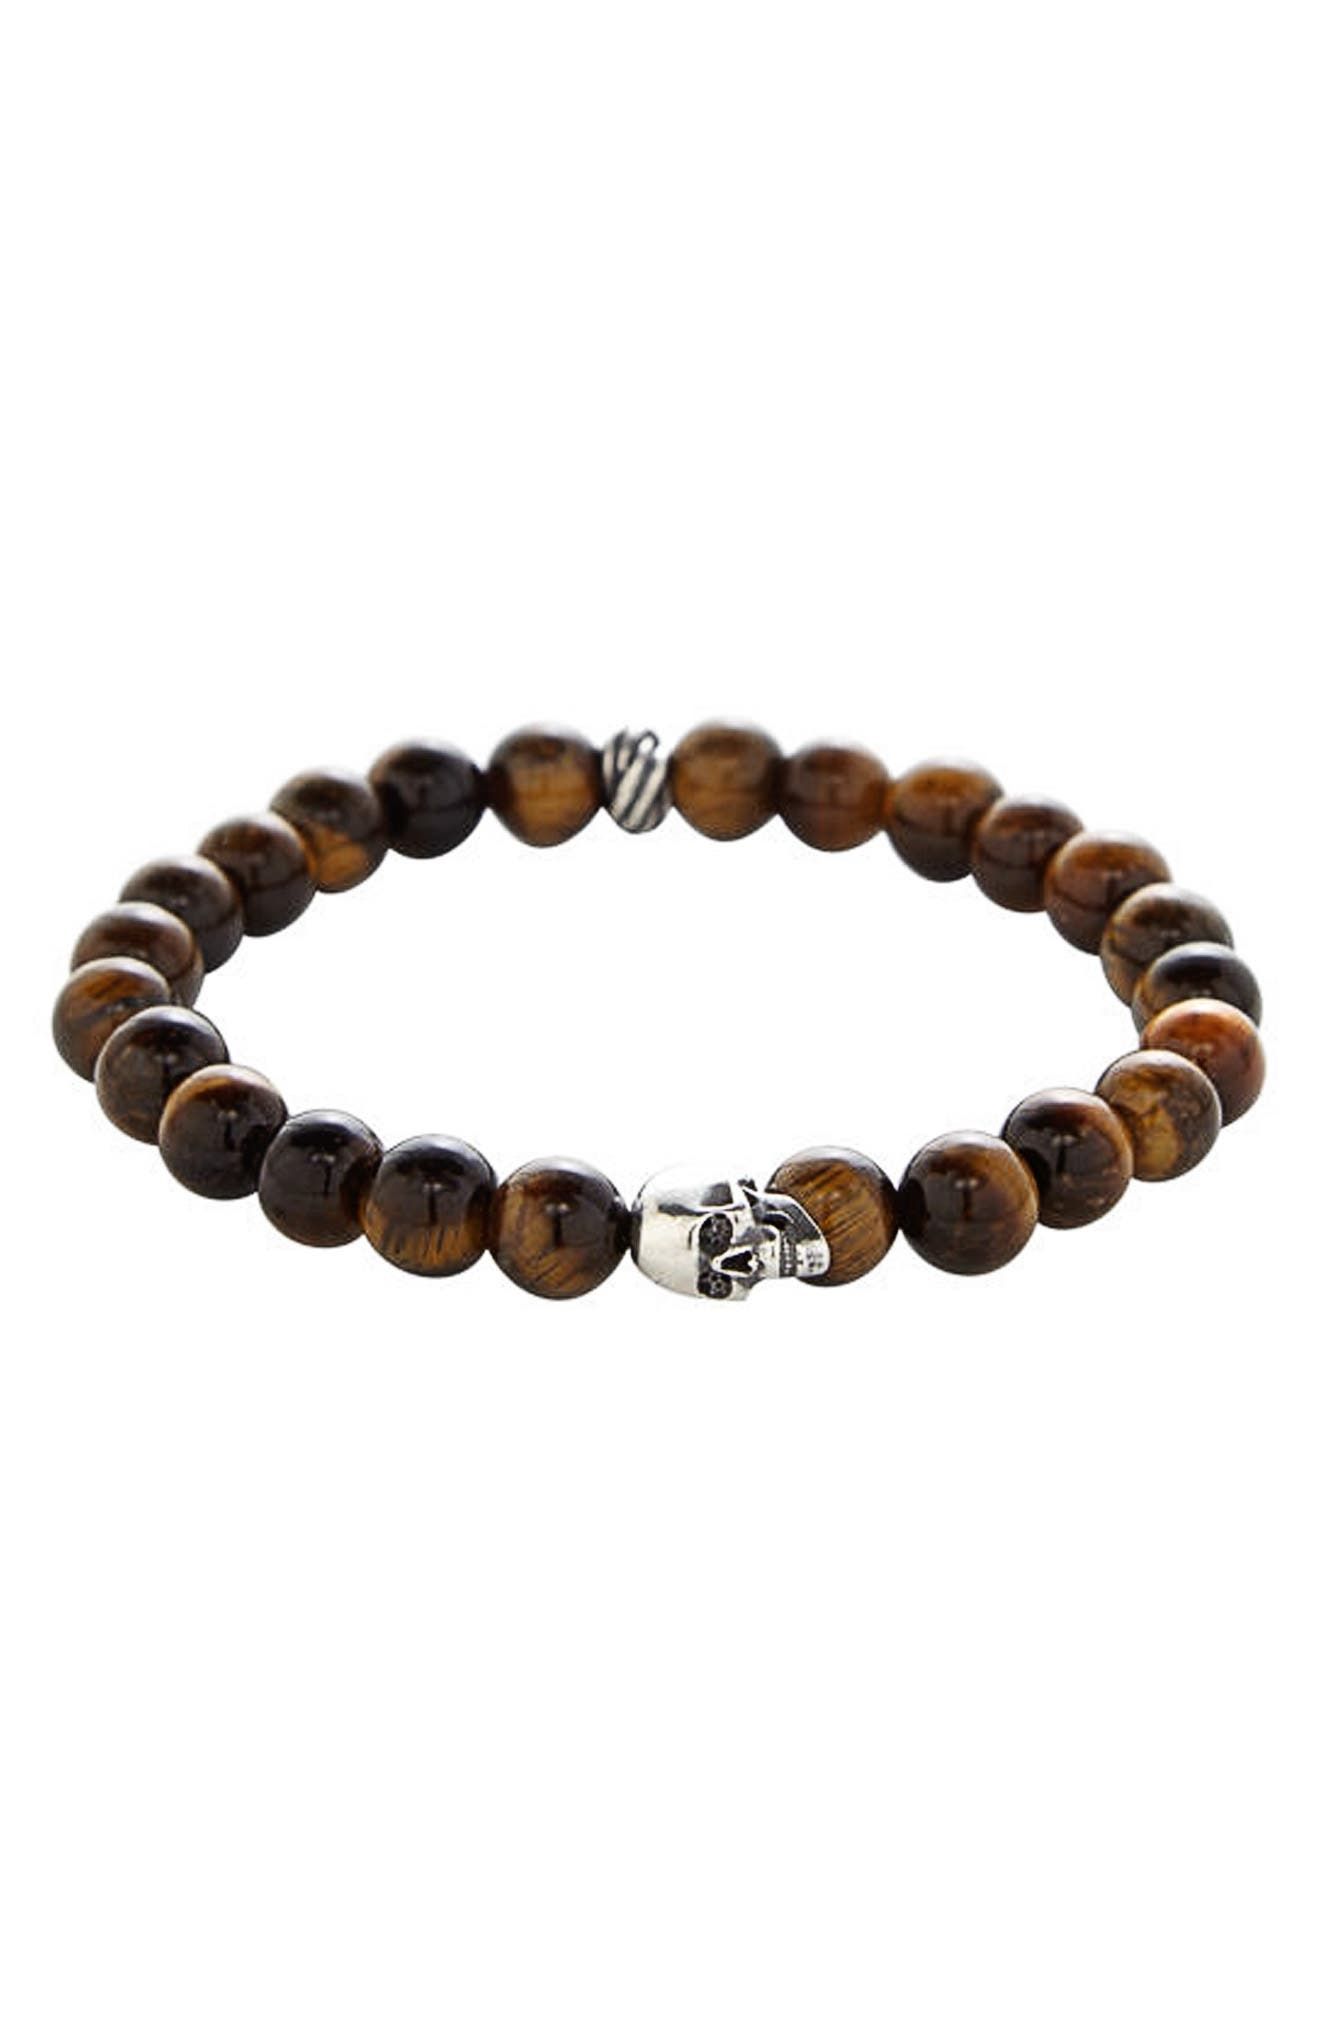 Stone Bead Stretch Bracelet,                             Main thumbnail 1, color,                             BROWN